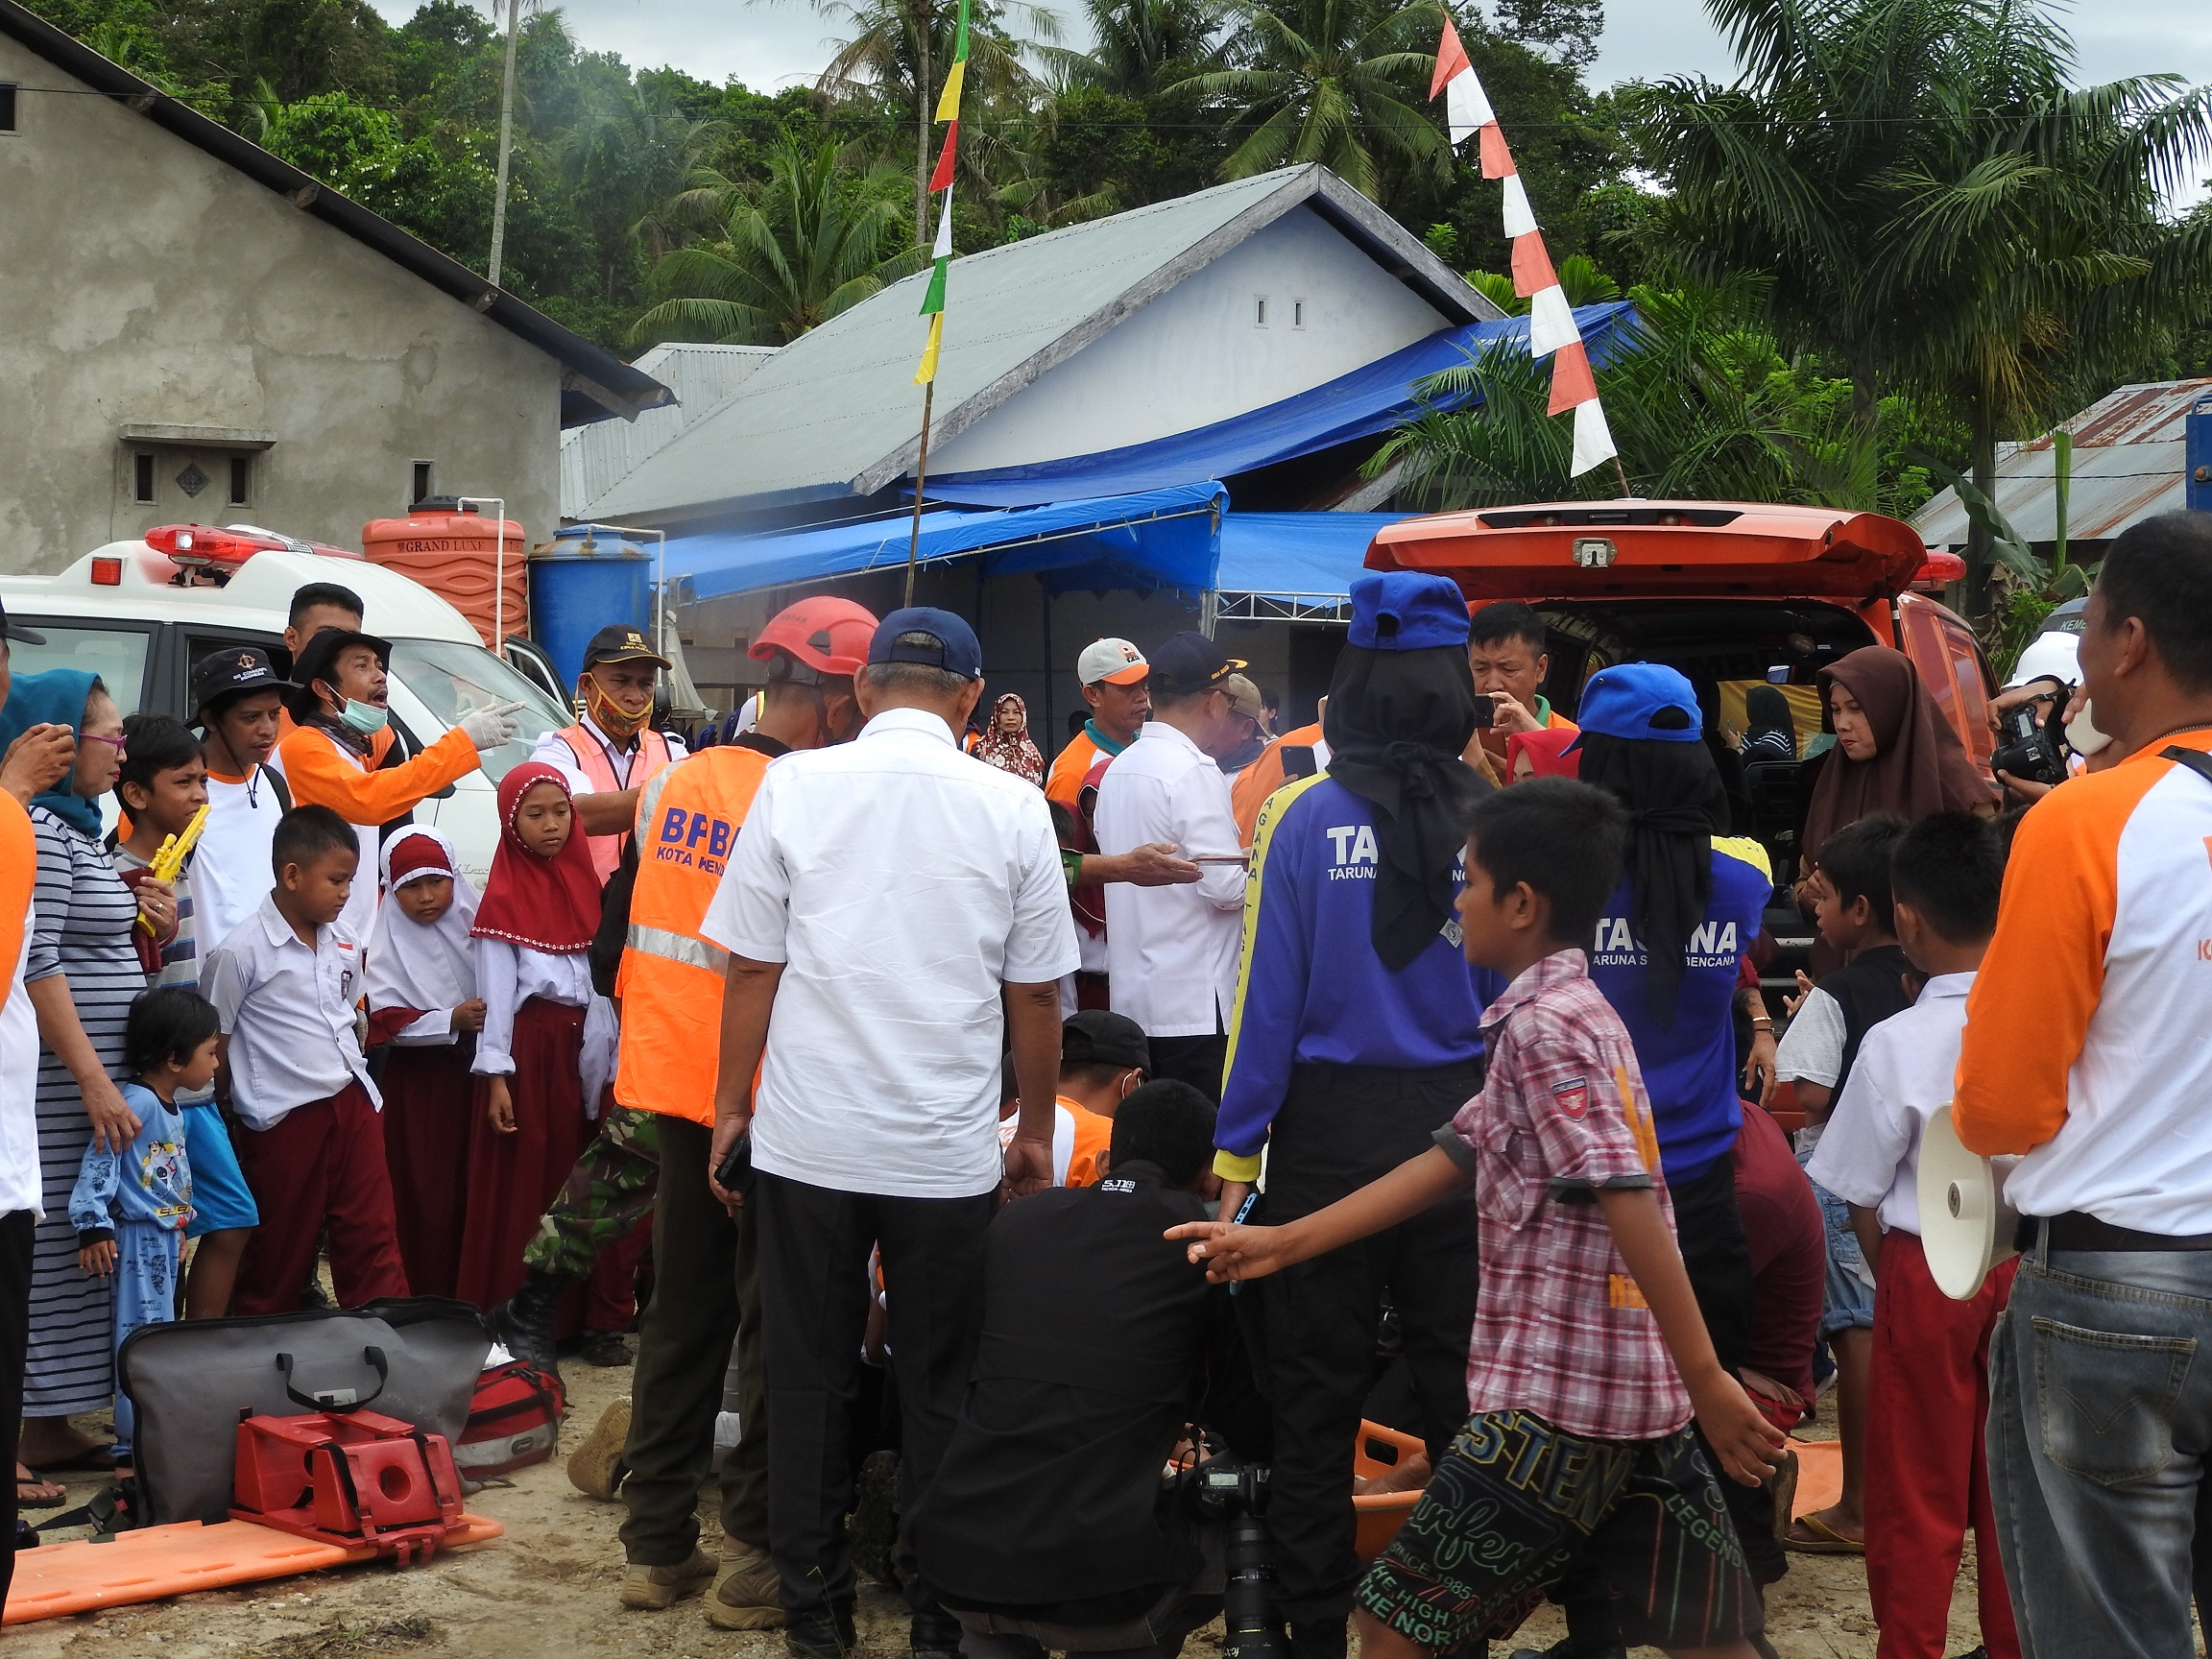 Elementary students participated in emergency response simulation in Lepo-Lepo Village, Kendari City, during HKBN 2019. Photo: USAID APIK Documentation